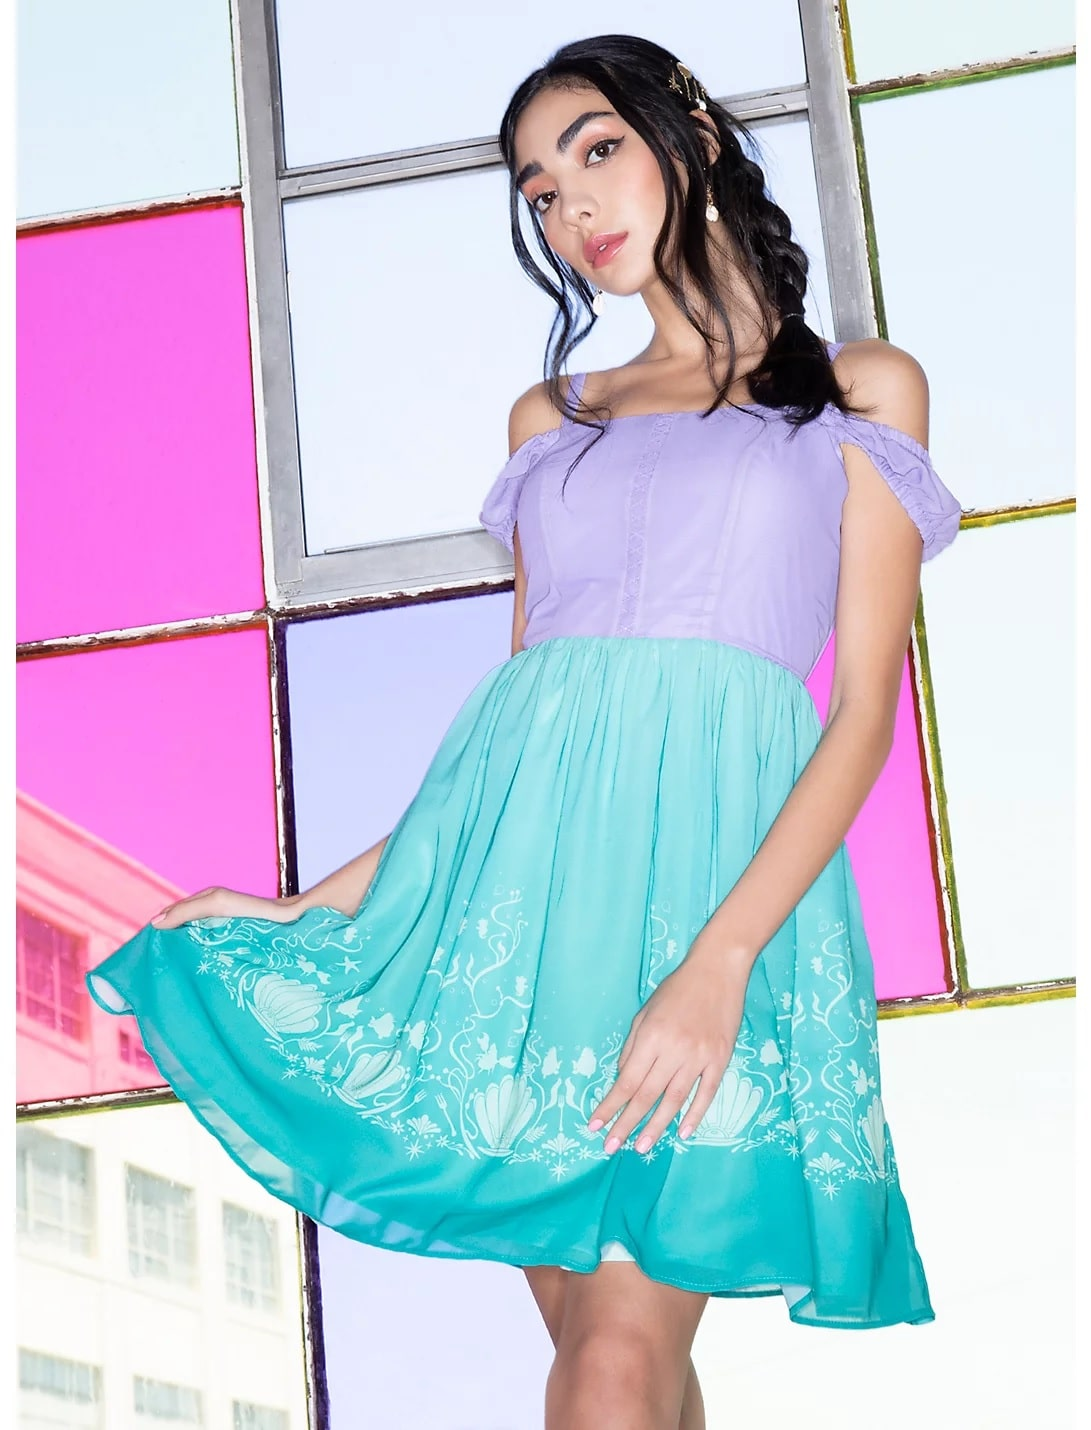 Her Universe Disney Princess dress collection is now available at Hot Topic 17